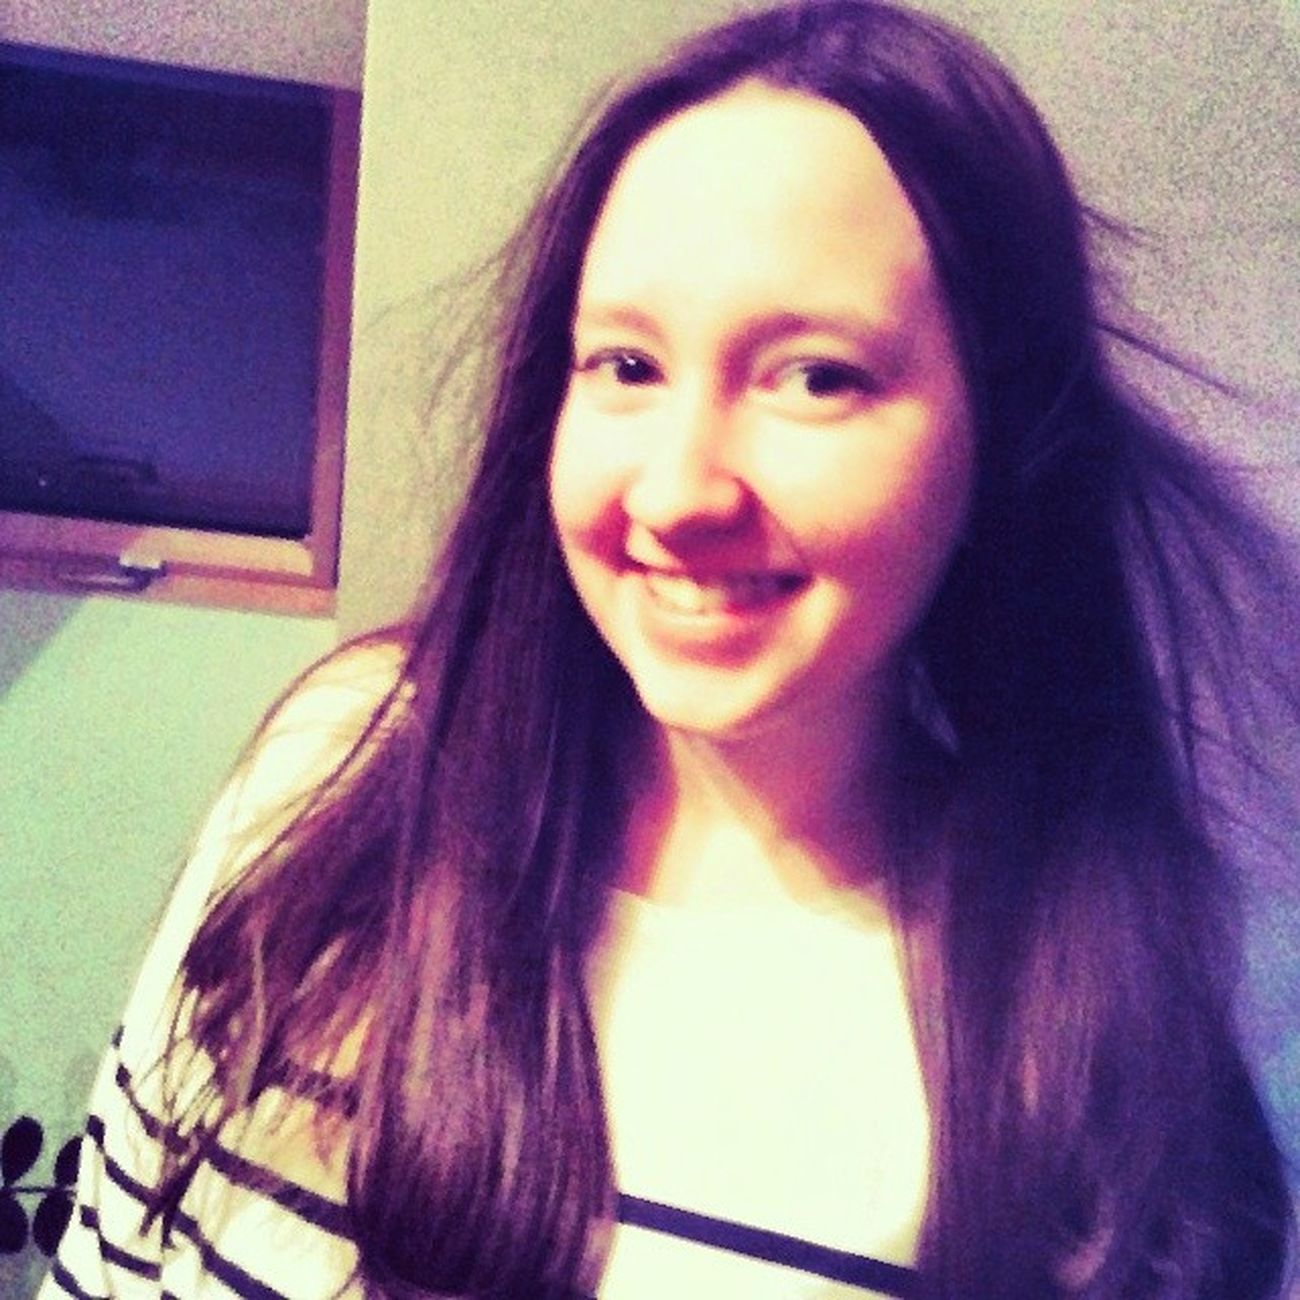 Wieczorna S łitka @peikko8 Nudzisie Polishgirl cute how nice :* hair like comment follow